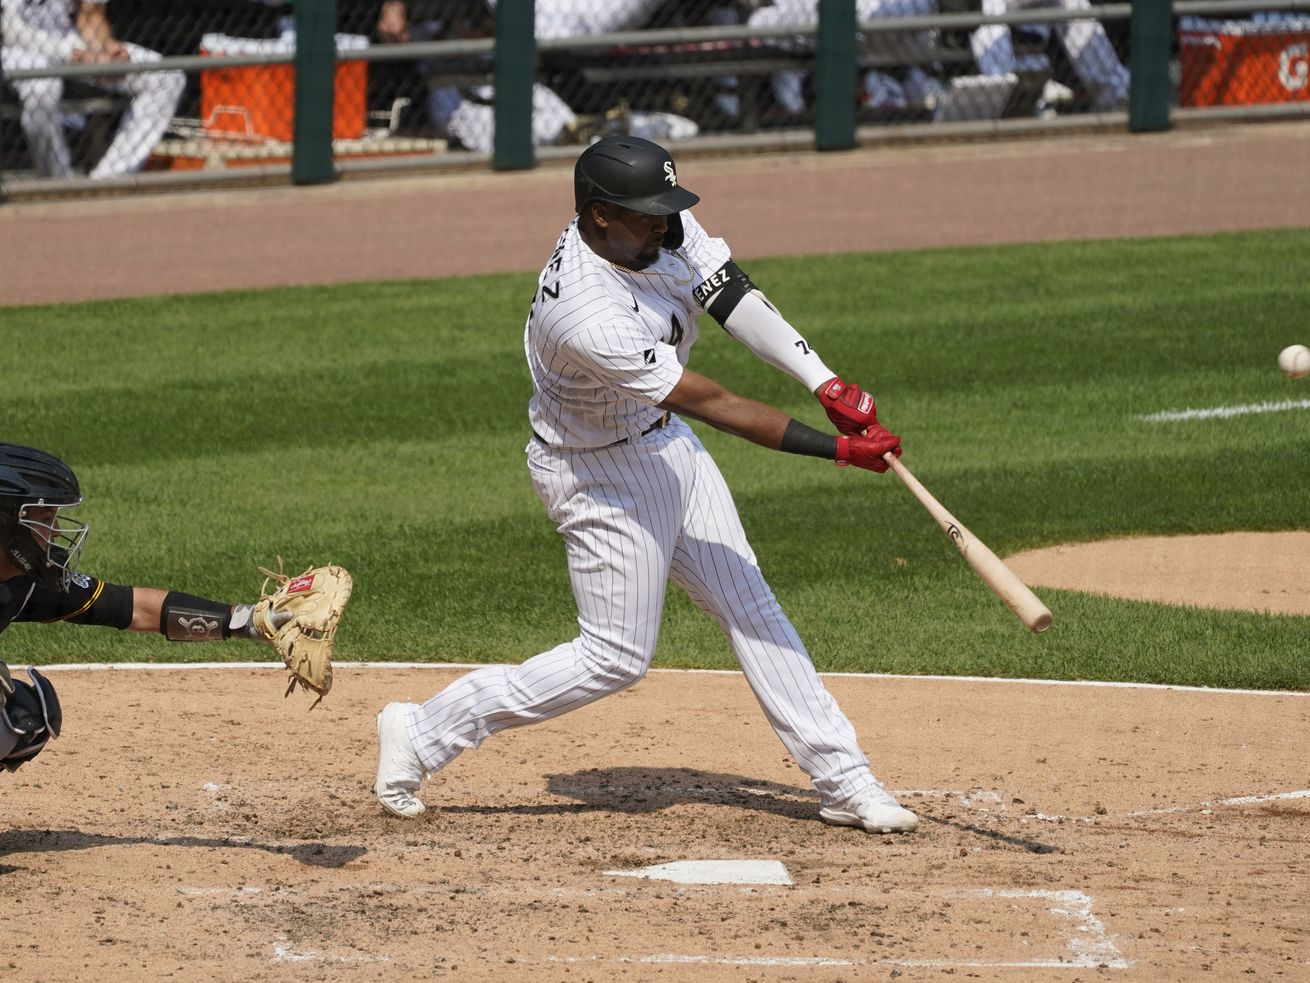 White Sox keep rolling, clobber Pirates 10-3 for ninth win in 10 games